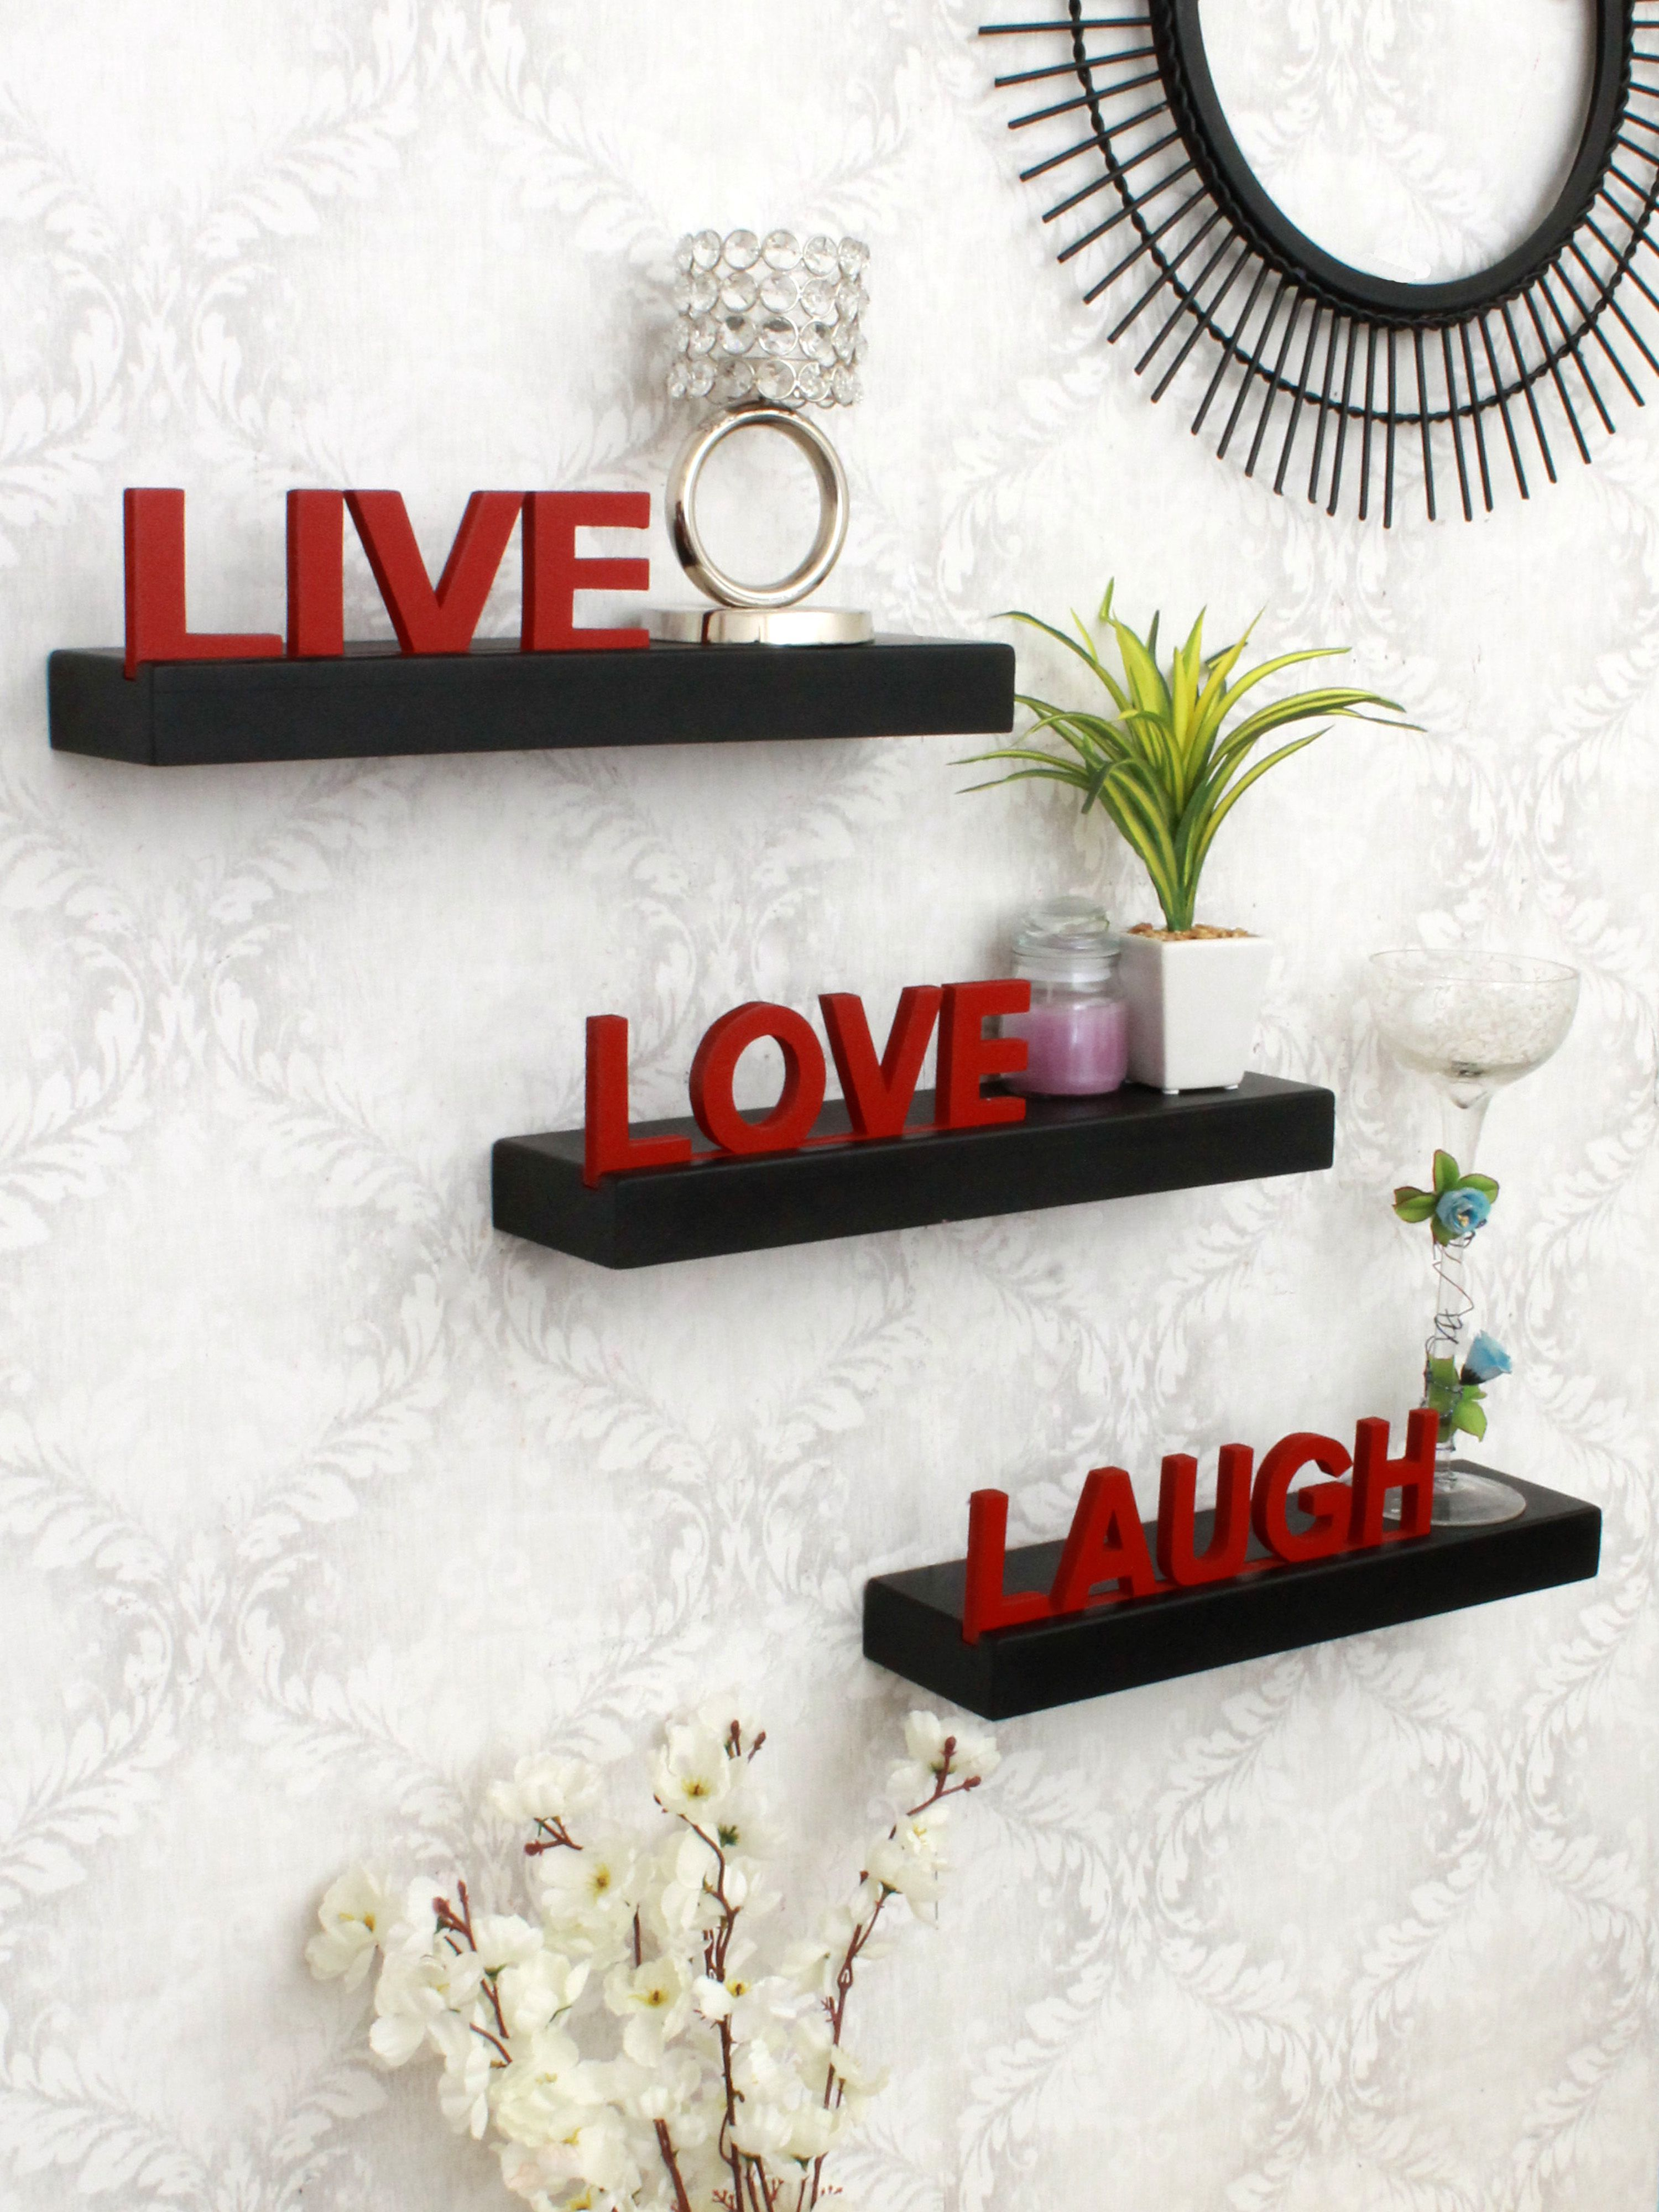 Home Sparkle MDF Live Love Laugh Wooden shelf For Wall Décor -Suitable For Living Room/Bed Room (Designed By Craftsman)